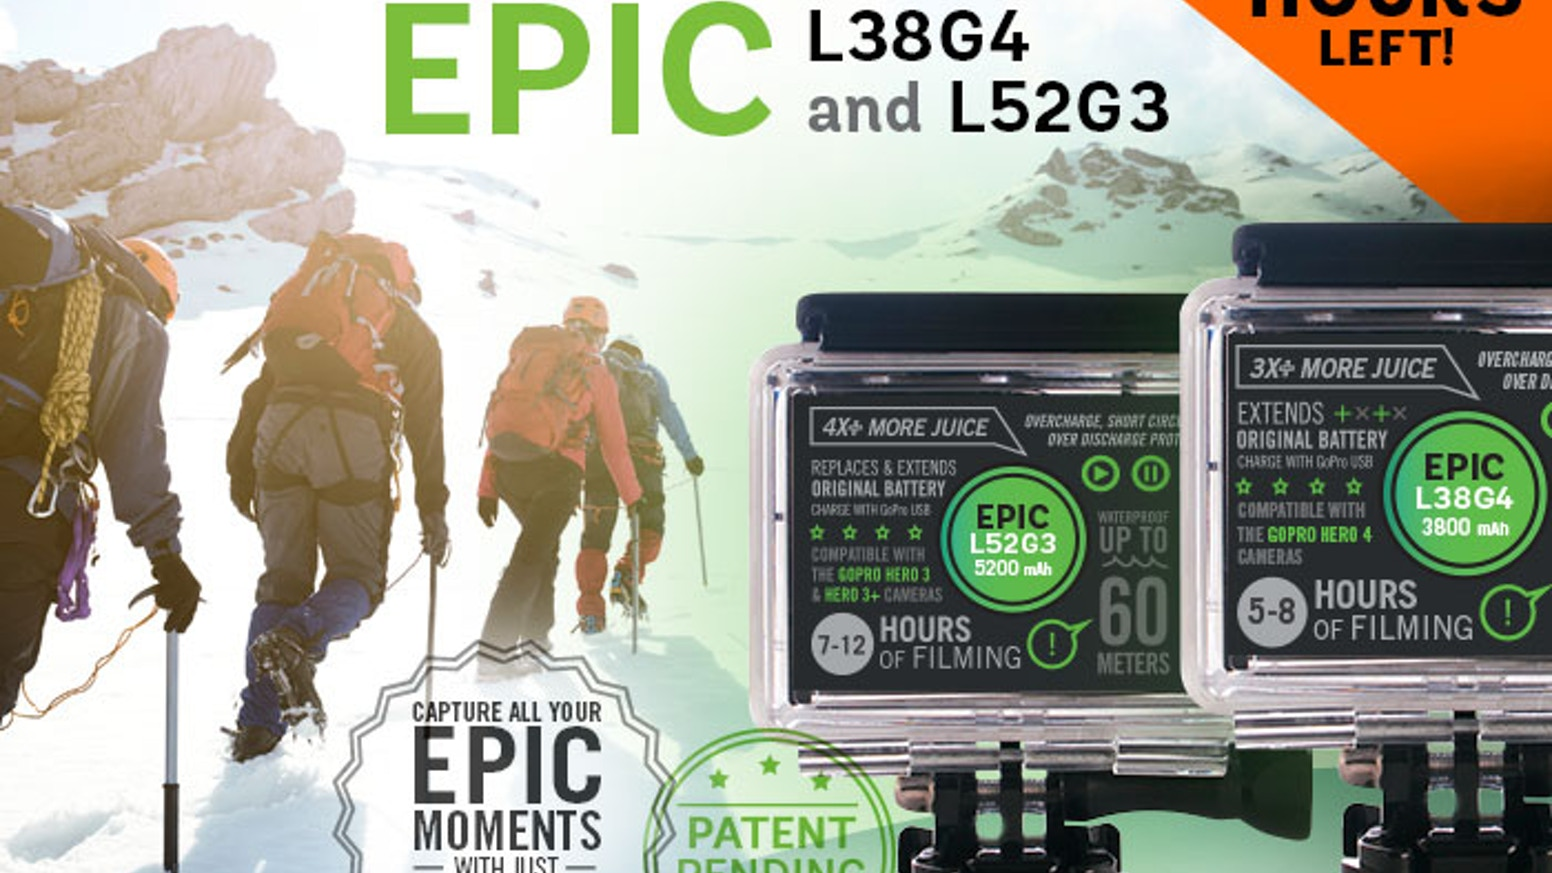 Triple the battery life of your GoPro Hero 4 and Hero 3/3+. Capture all your Epic moments with just one battery! (Patent Pending)